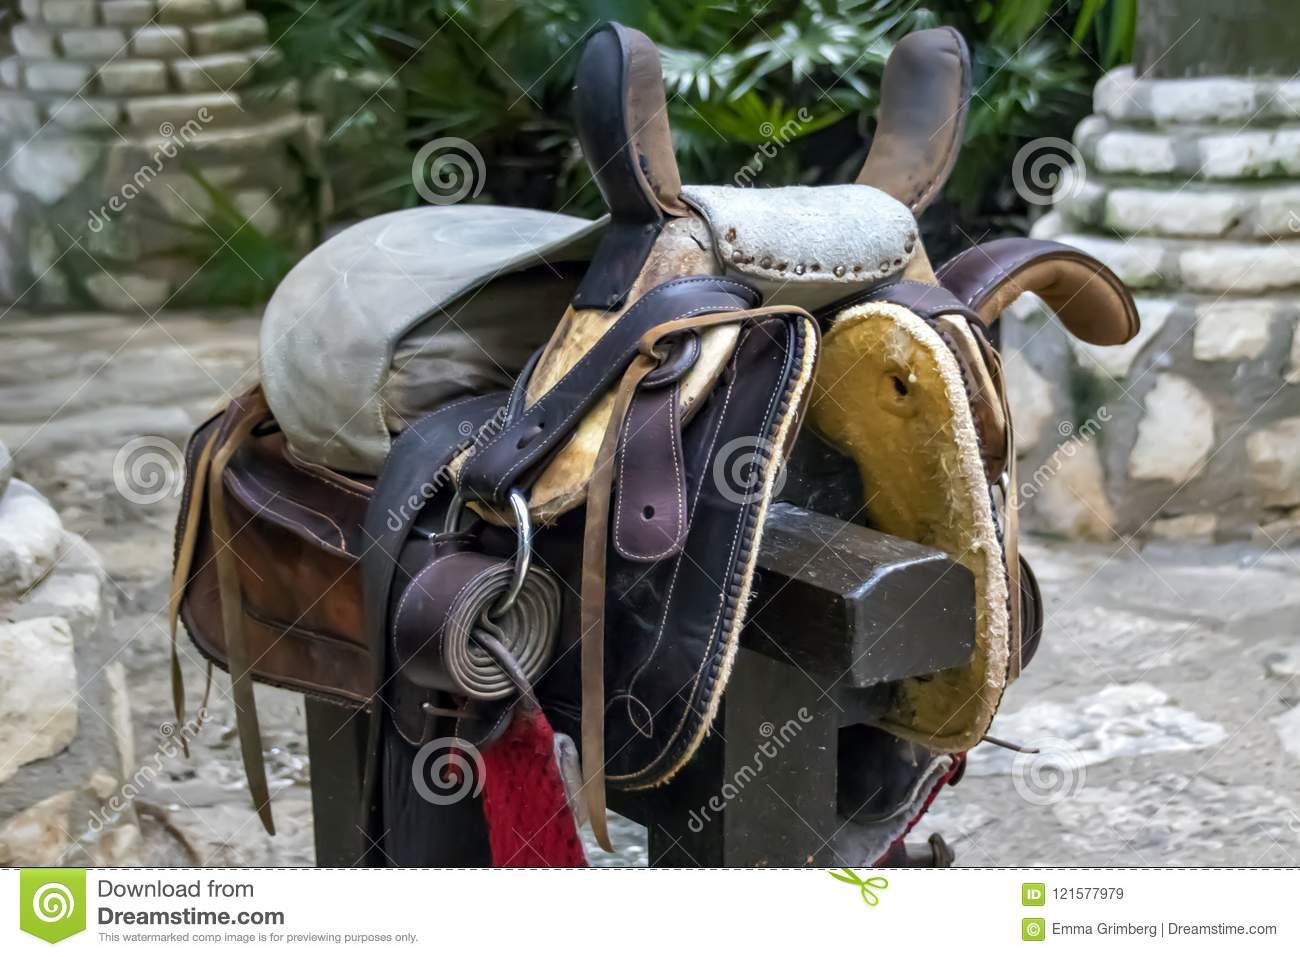 Leather horse harness on a wooden post